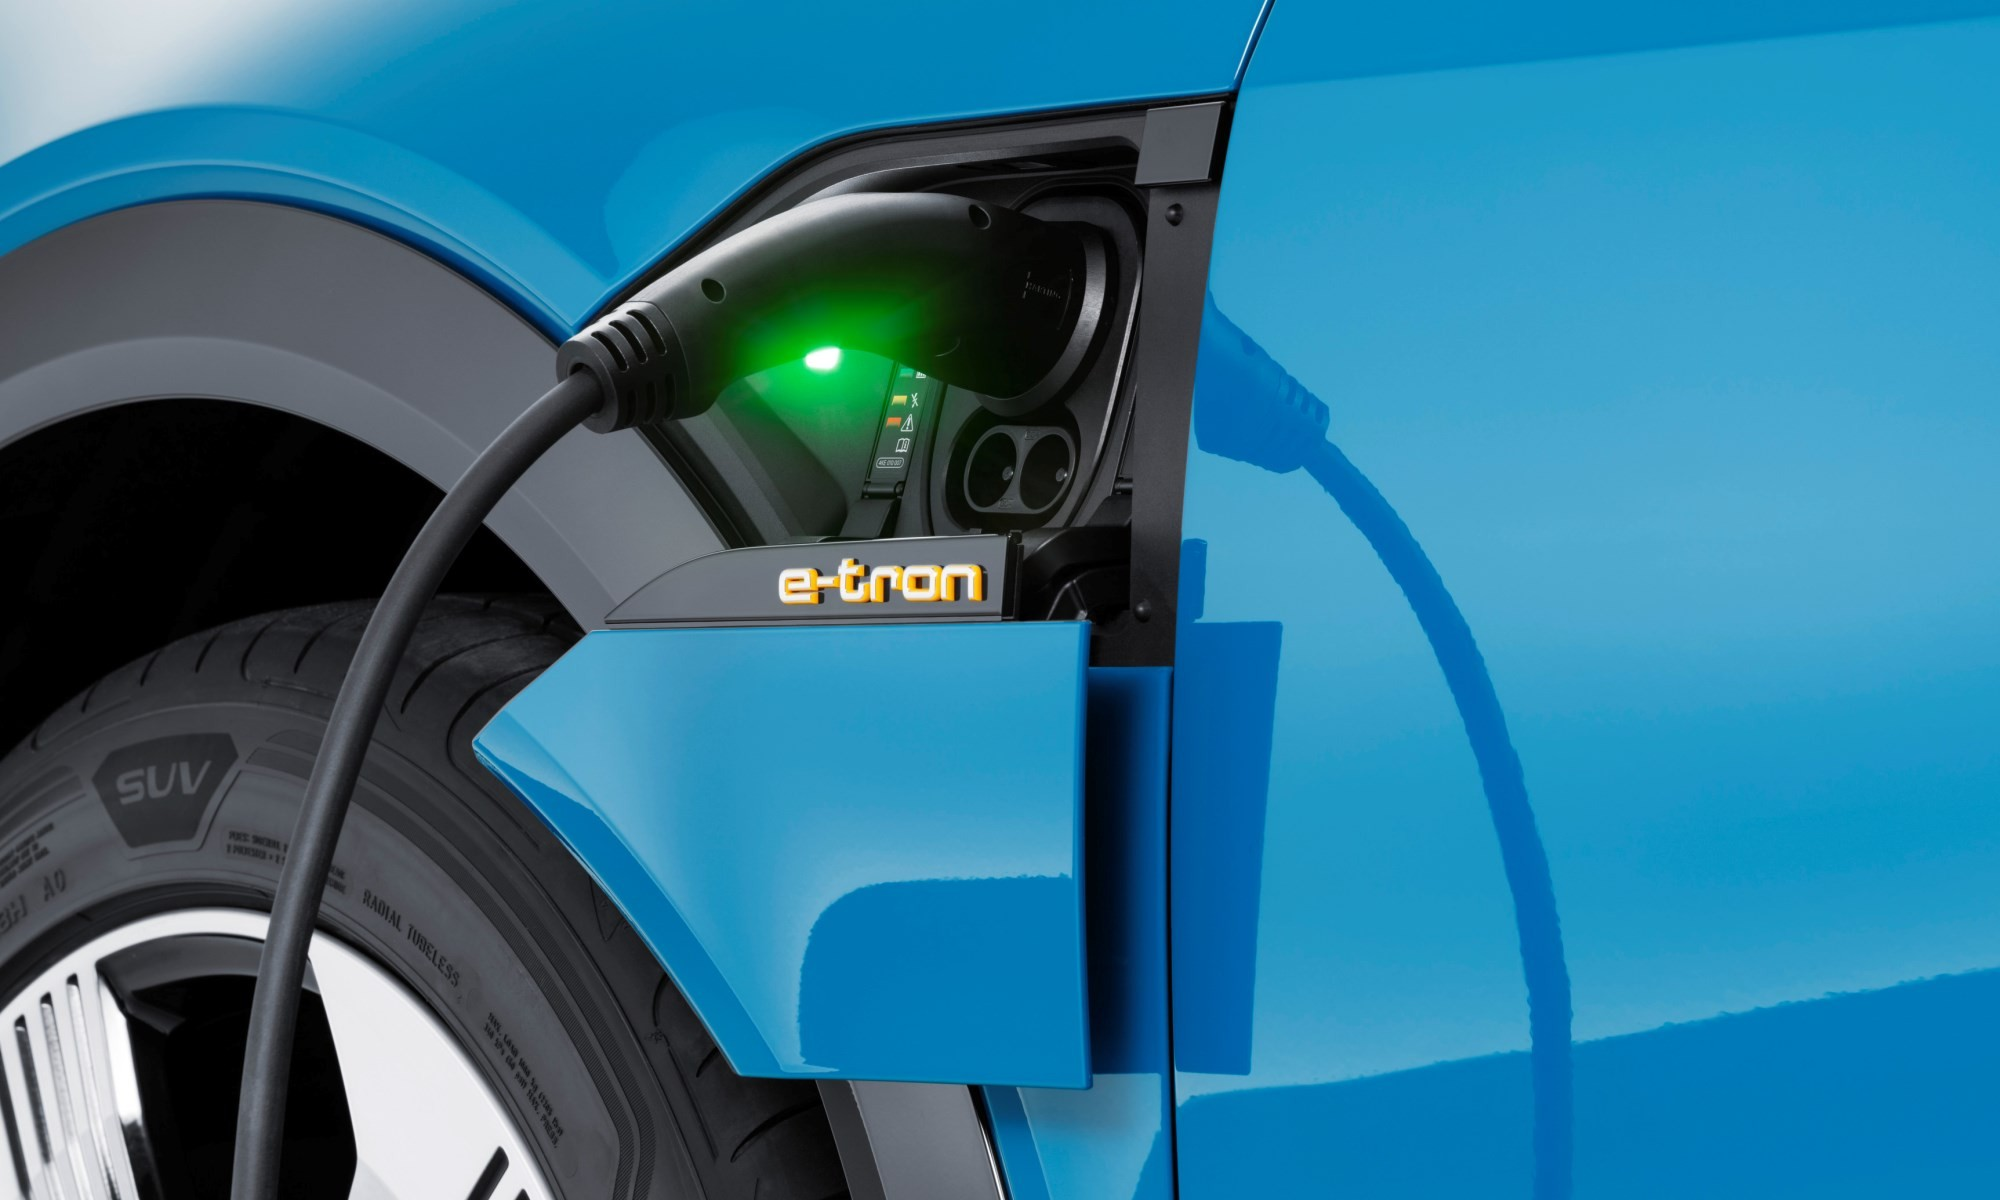 Audi e-tron charging point